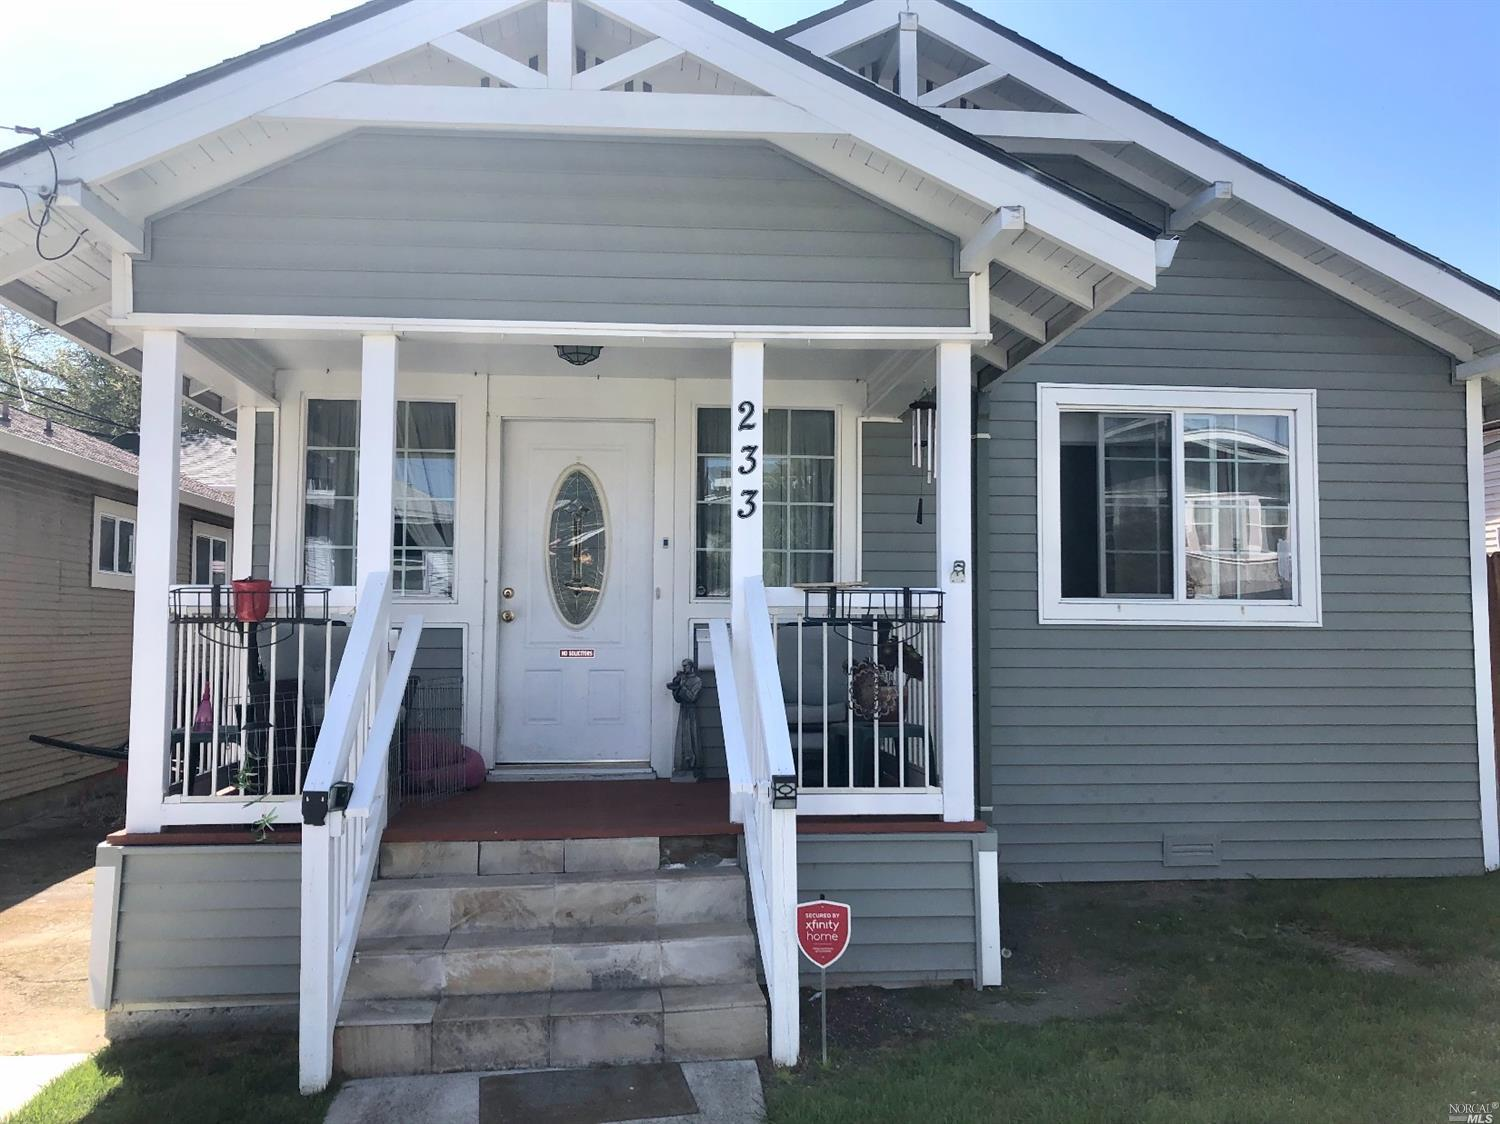 Rare opportunity to own a cozy two-bedroom, one bathroom Rio Vista Cozy home just minutes from Sacra